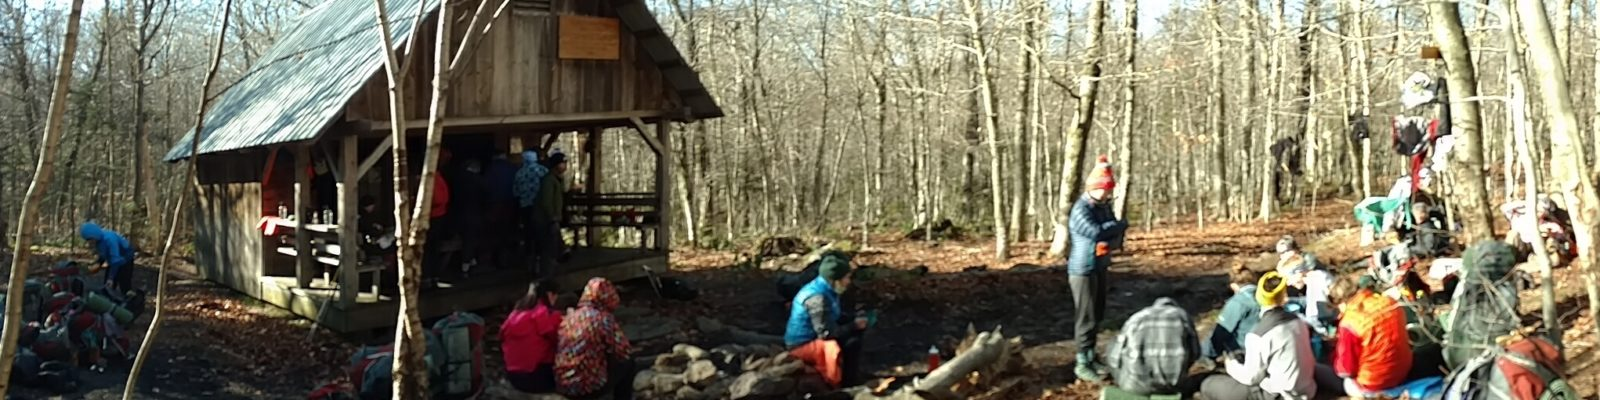 Group of hikers sitting outside the Stratton Mountain shelter in late fall